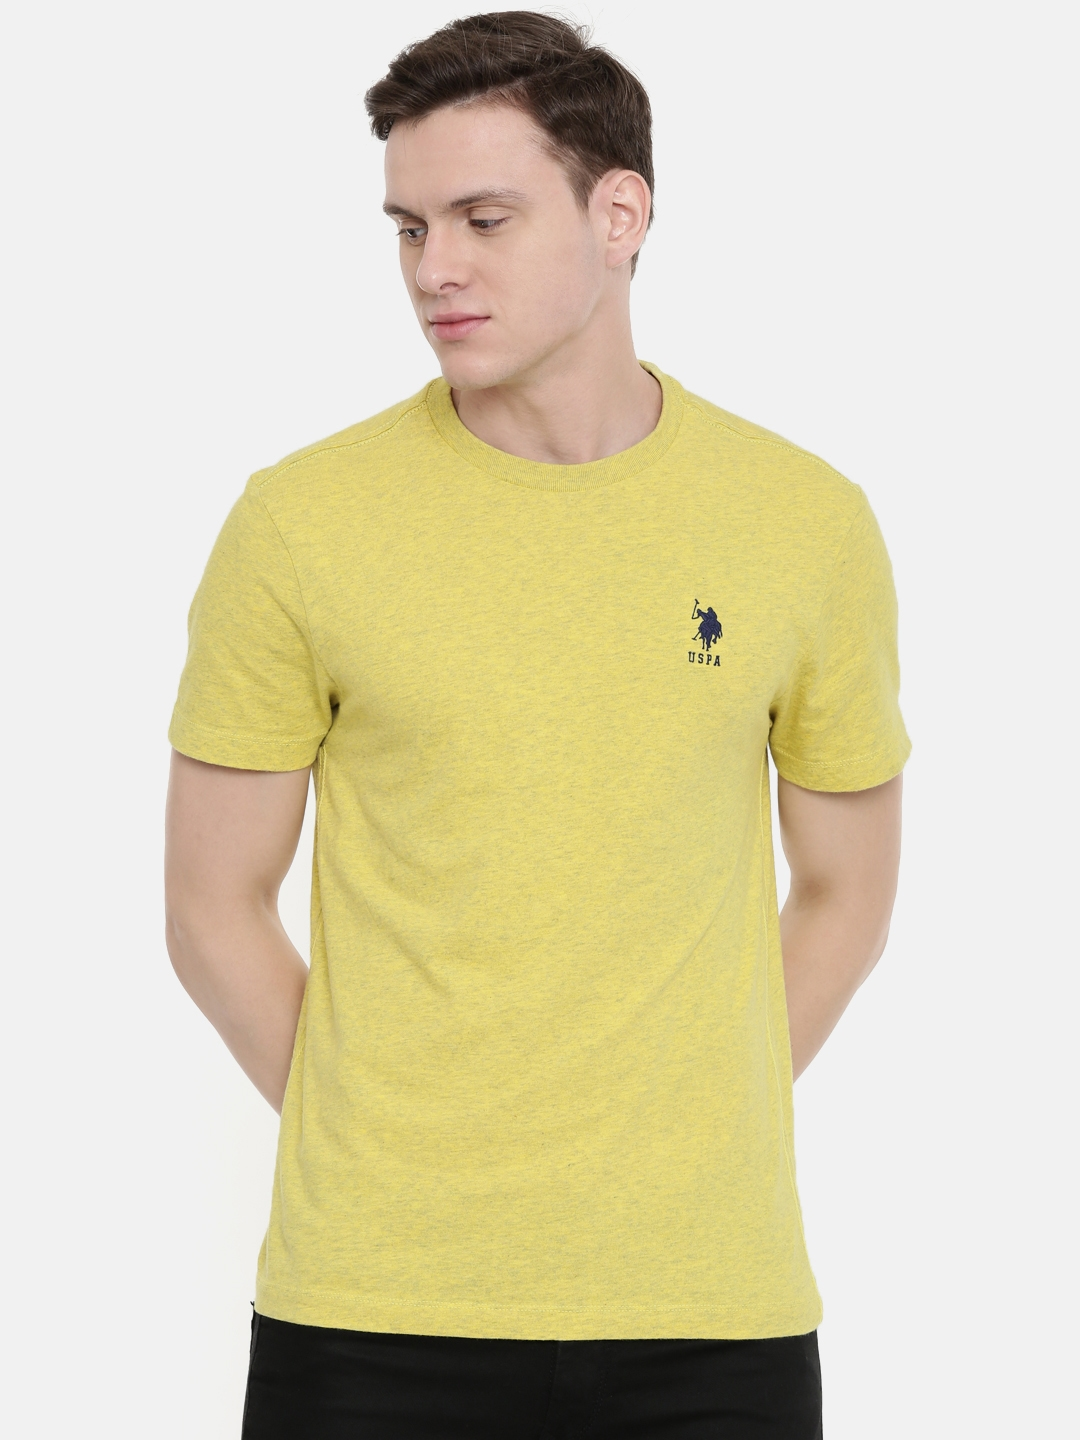 U.S. Polo Assn. Men Yellow Solid Round Neck T shirt